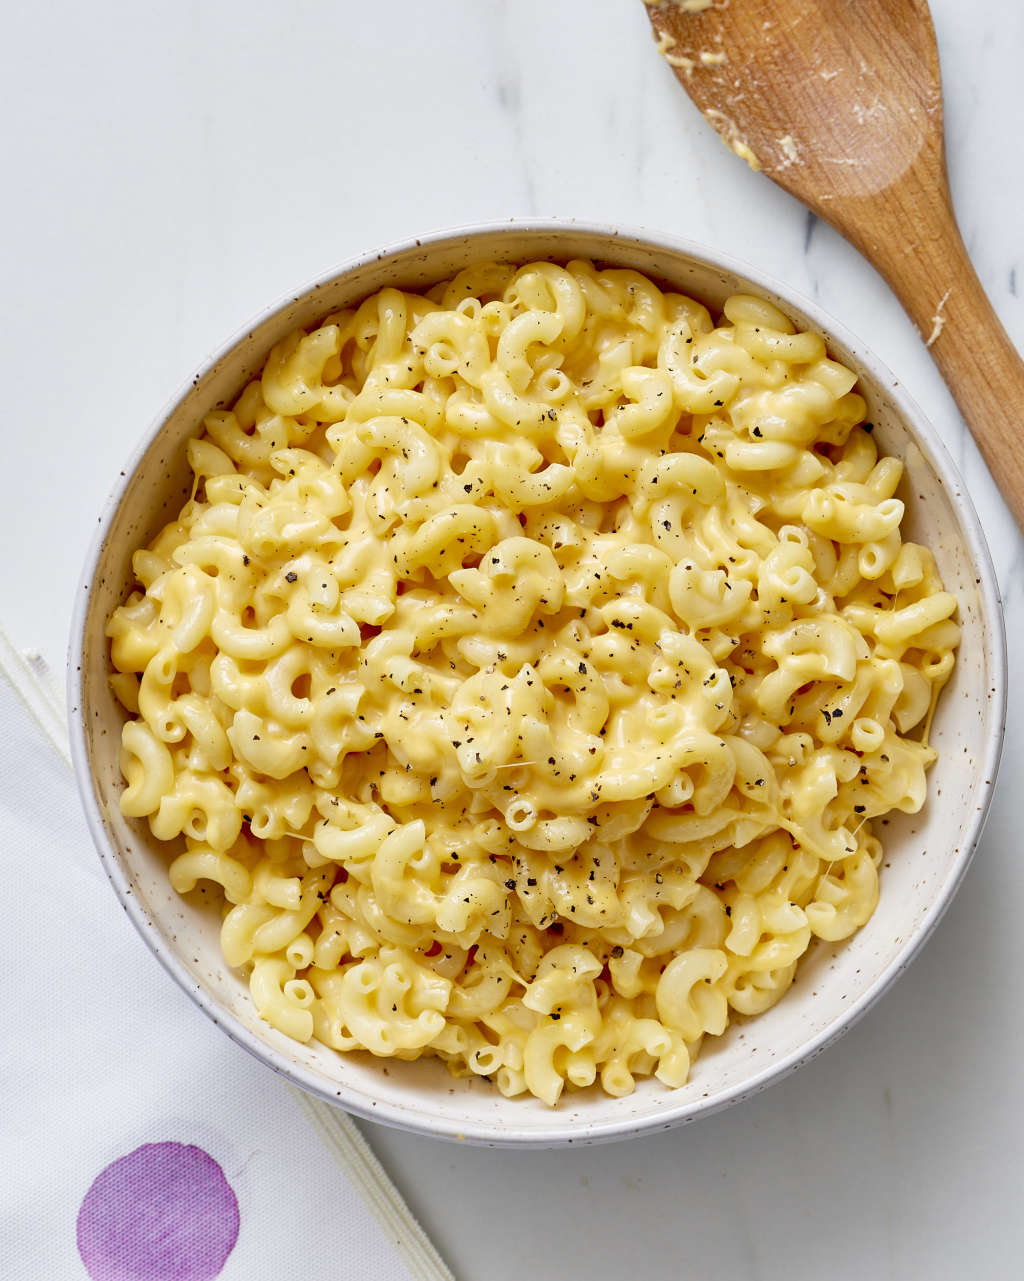 5-Ingredient Stovetop Mac & Cheese Is Ready in 15 Minutes